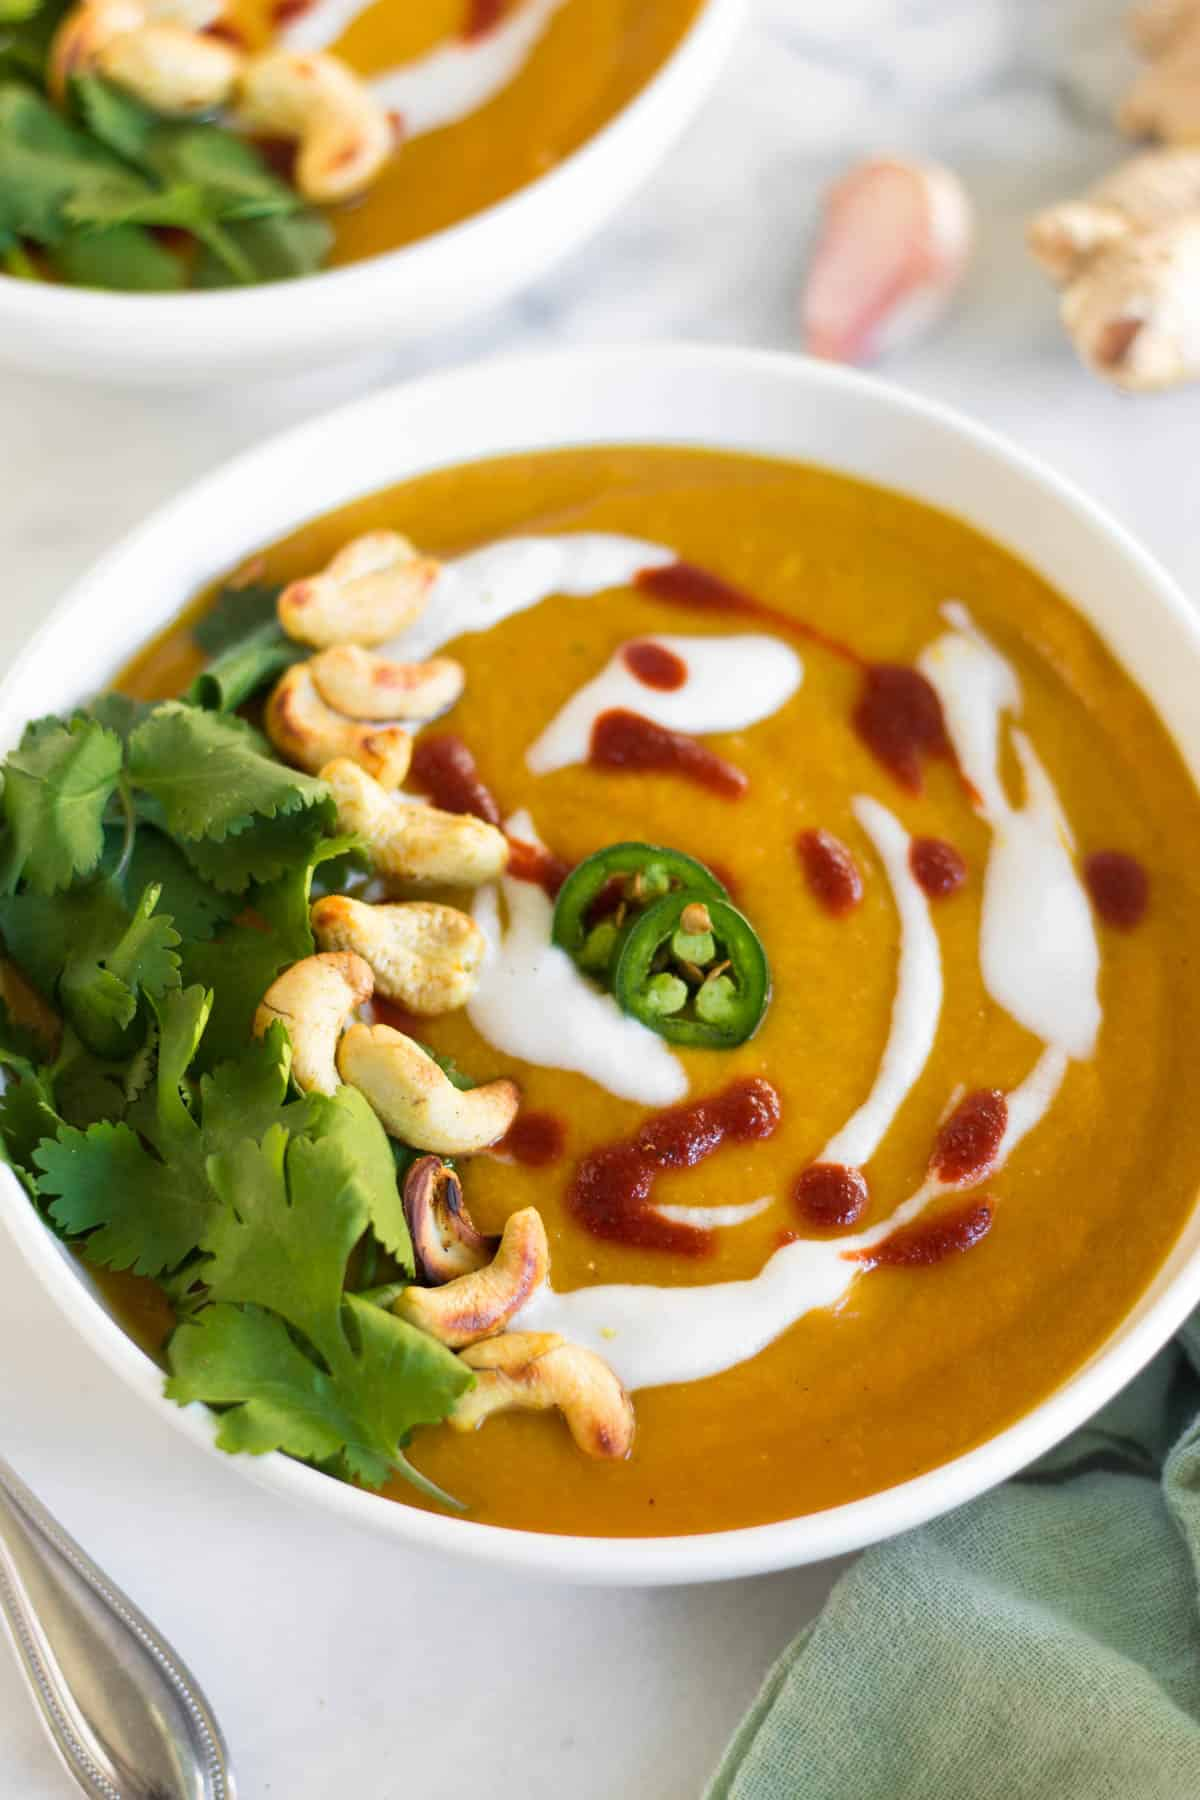 White bowl on a marble counter with curry cauliflower butternut squash soup garnished with cilantro, cashews, coconut yogurt, hot sauce, and jalapeños